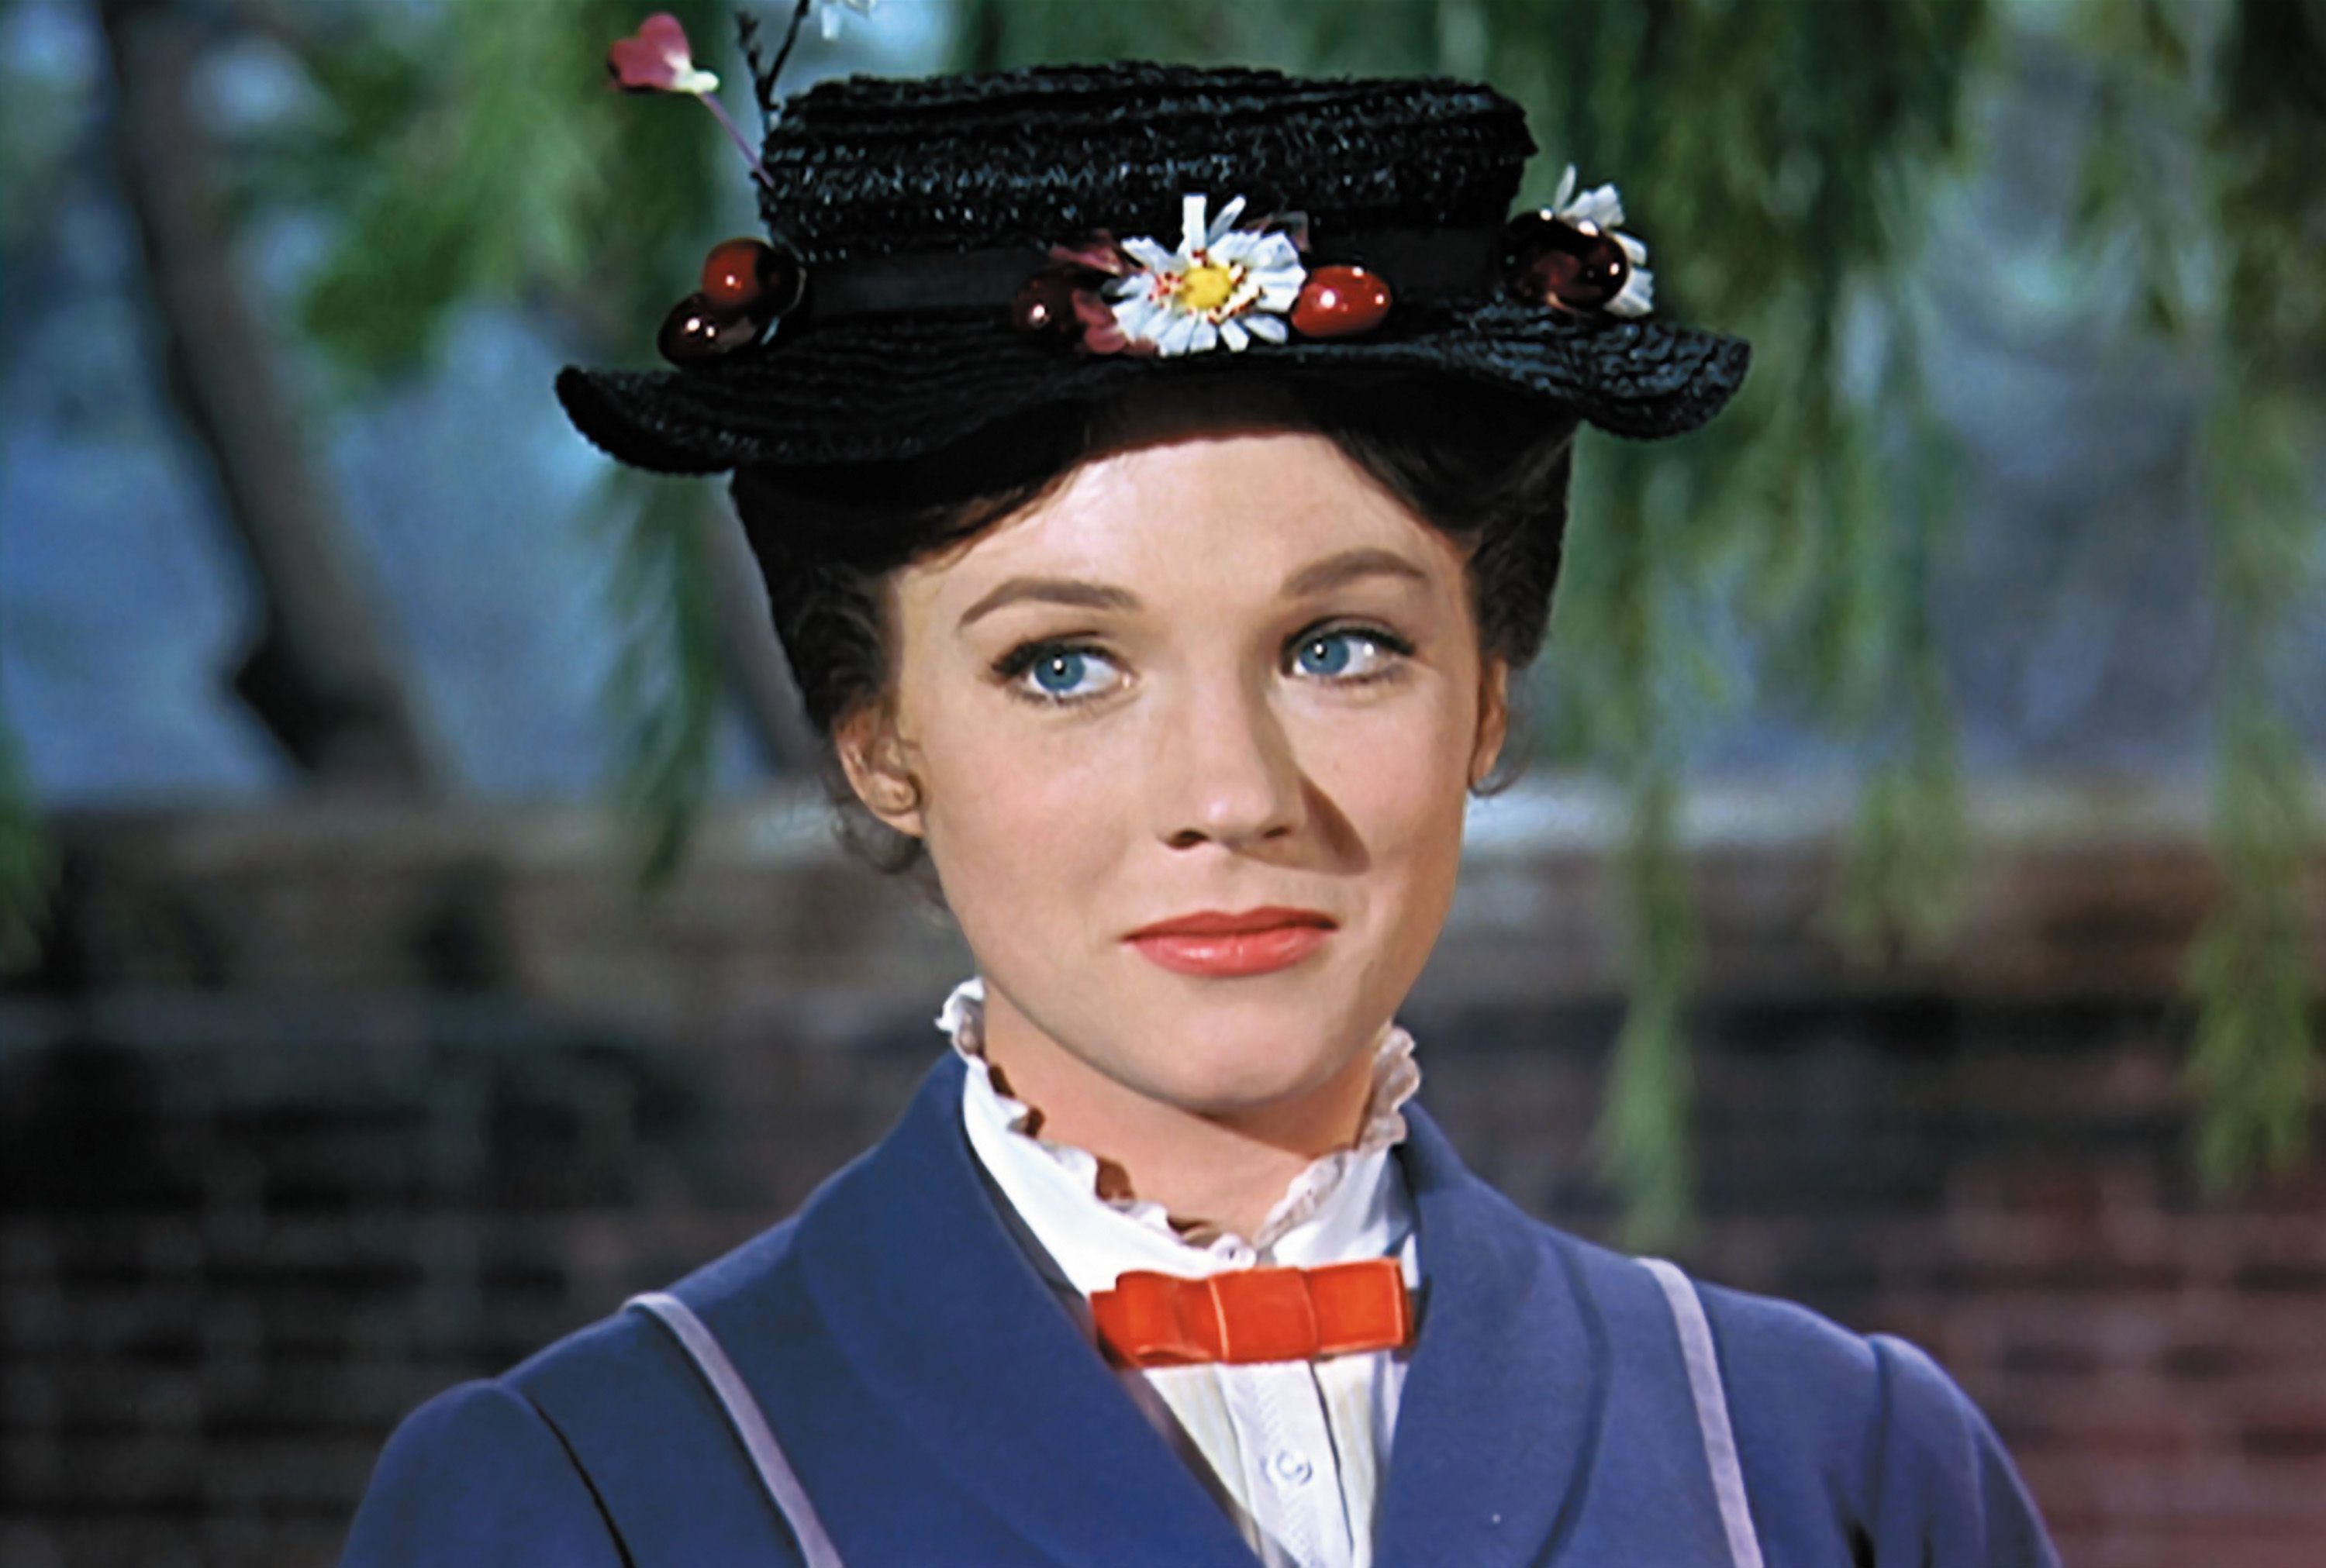 This actress is the frontrunner to play Mary Poppins